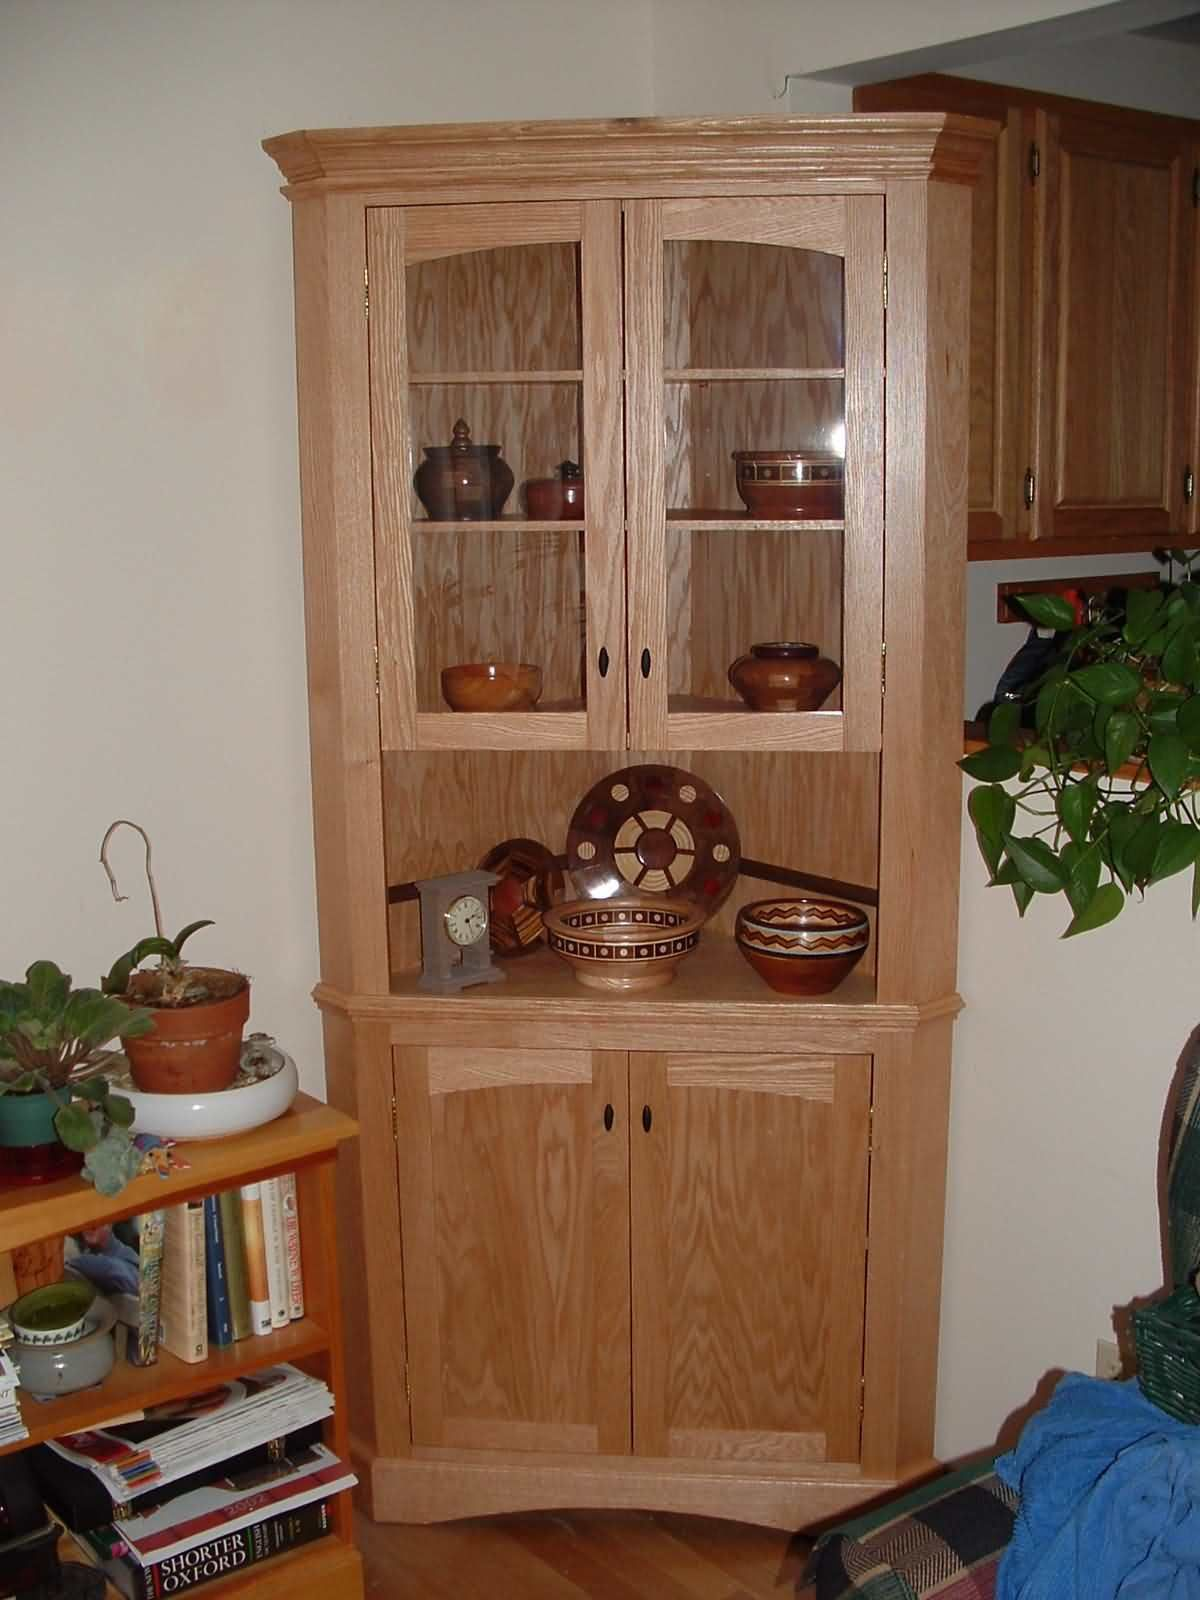 Handcrafted Corner Cabinet | Cabinet woodworking plans ...